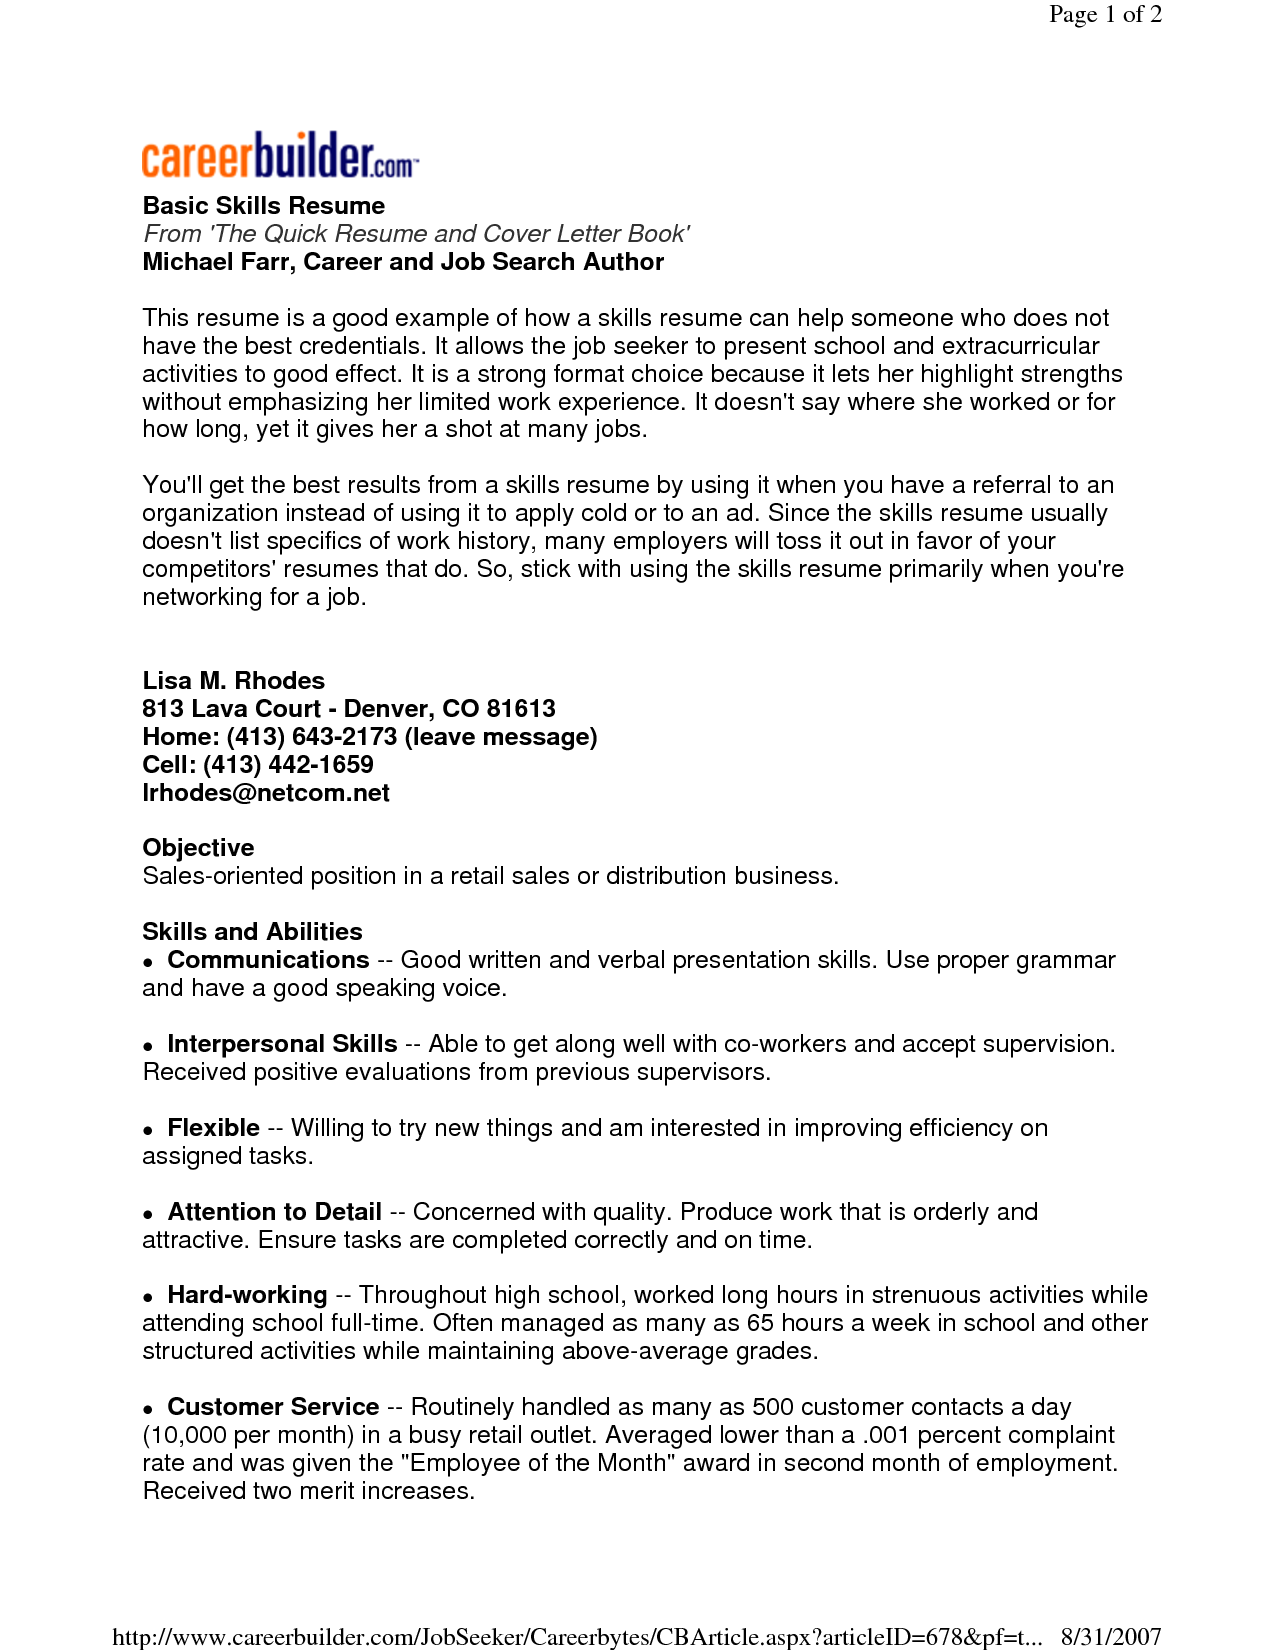 good skills and abilities for a resumes